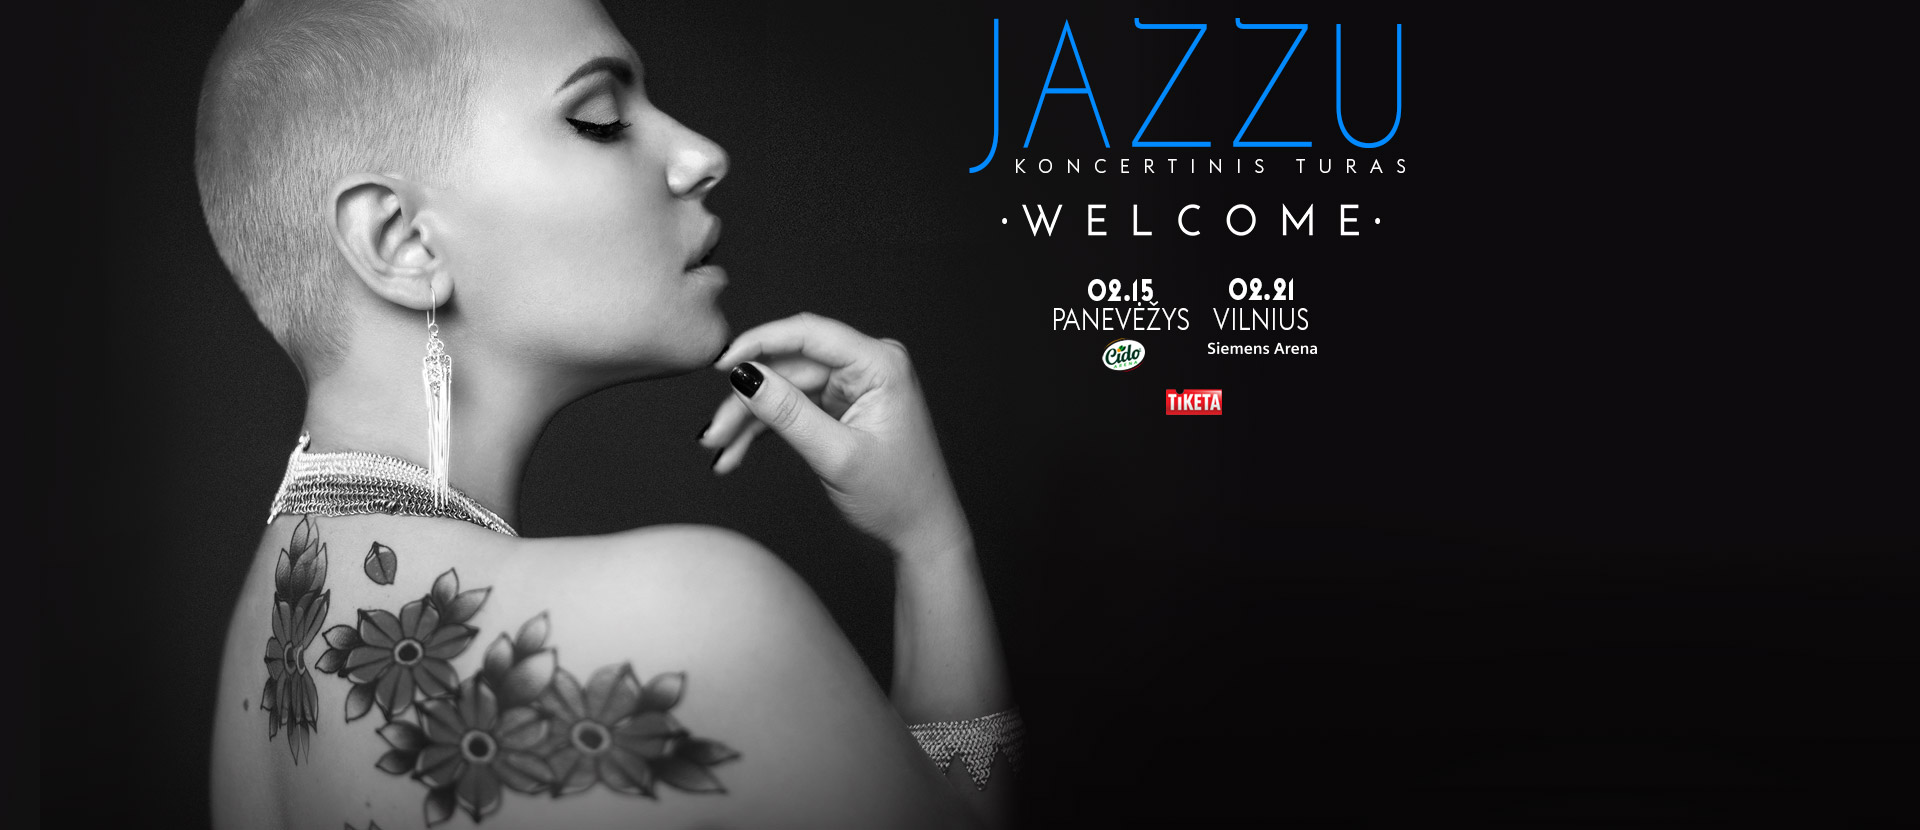 JAZZU. WELCOME koncertinis turas